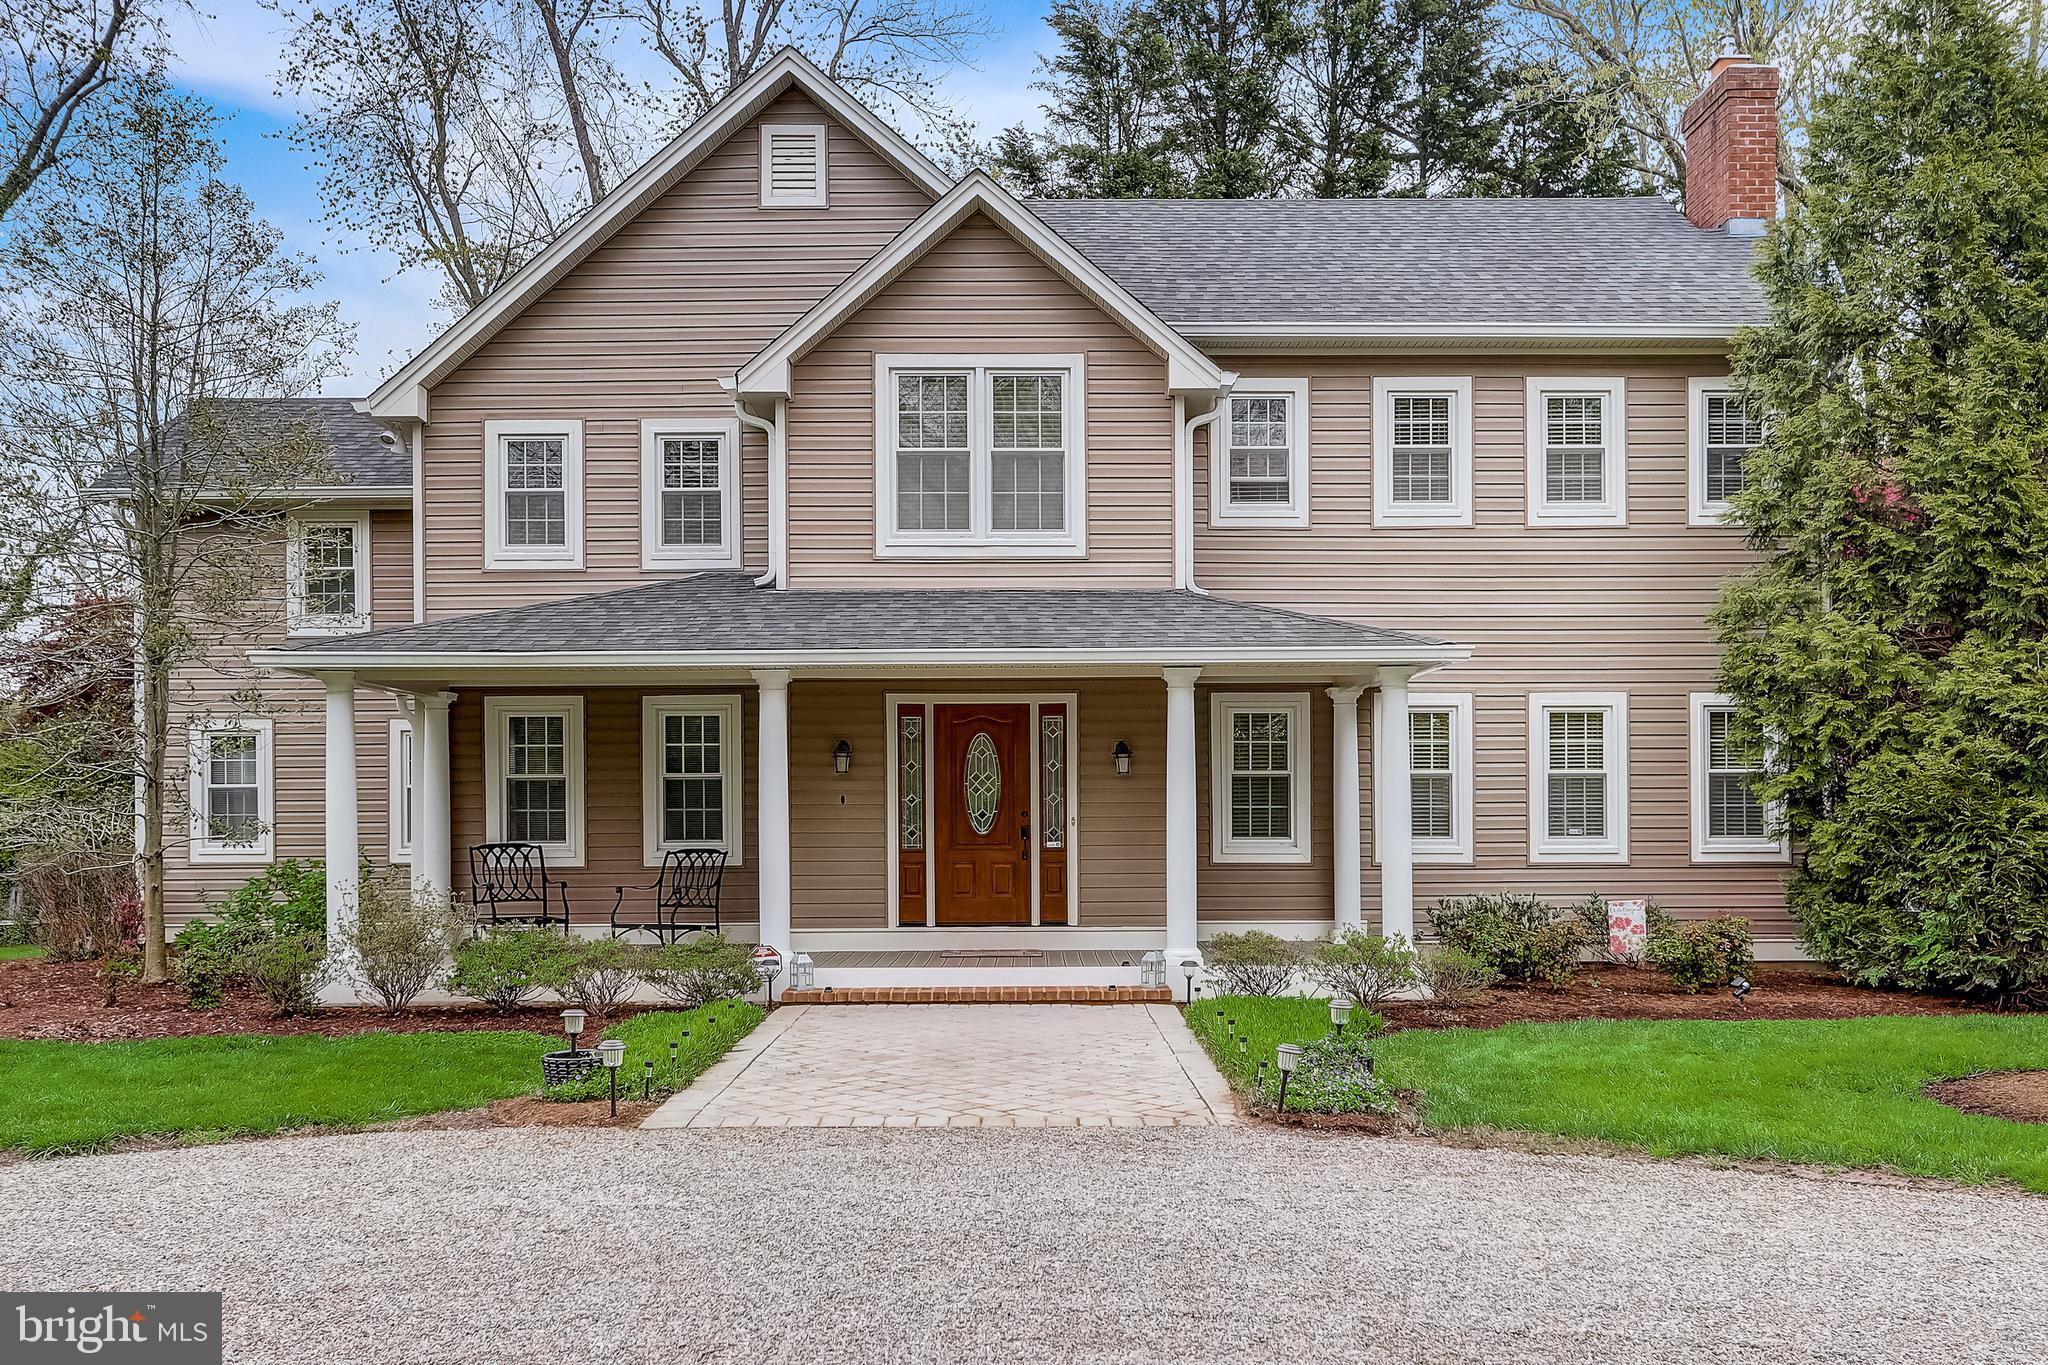 This beautiful and unique home is ready for its new owner! The original home was built in 1900 and a